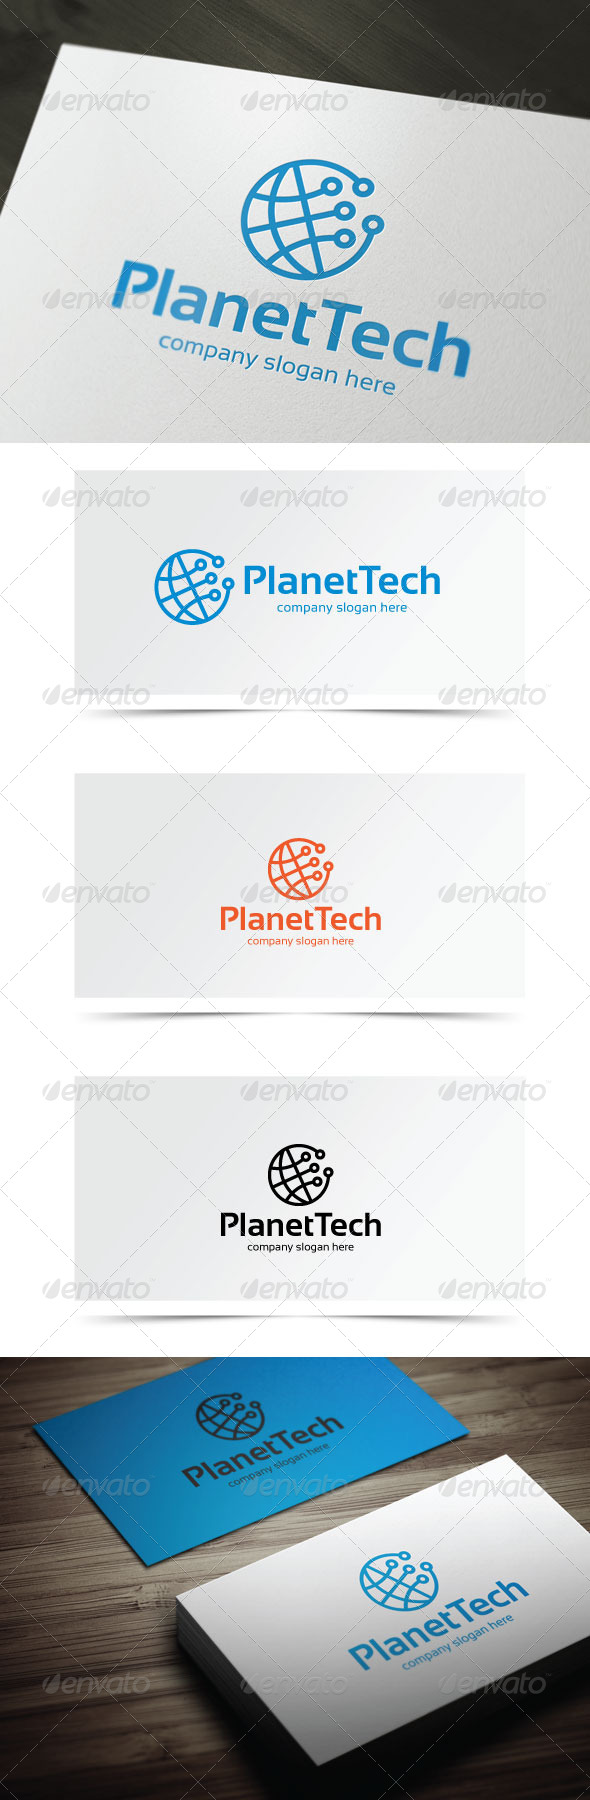 Planet Tech - Symbols Logo Templates